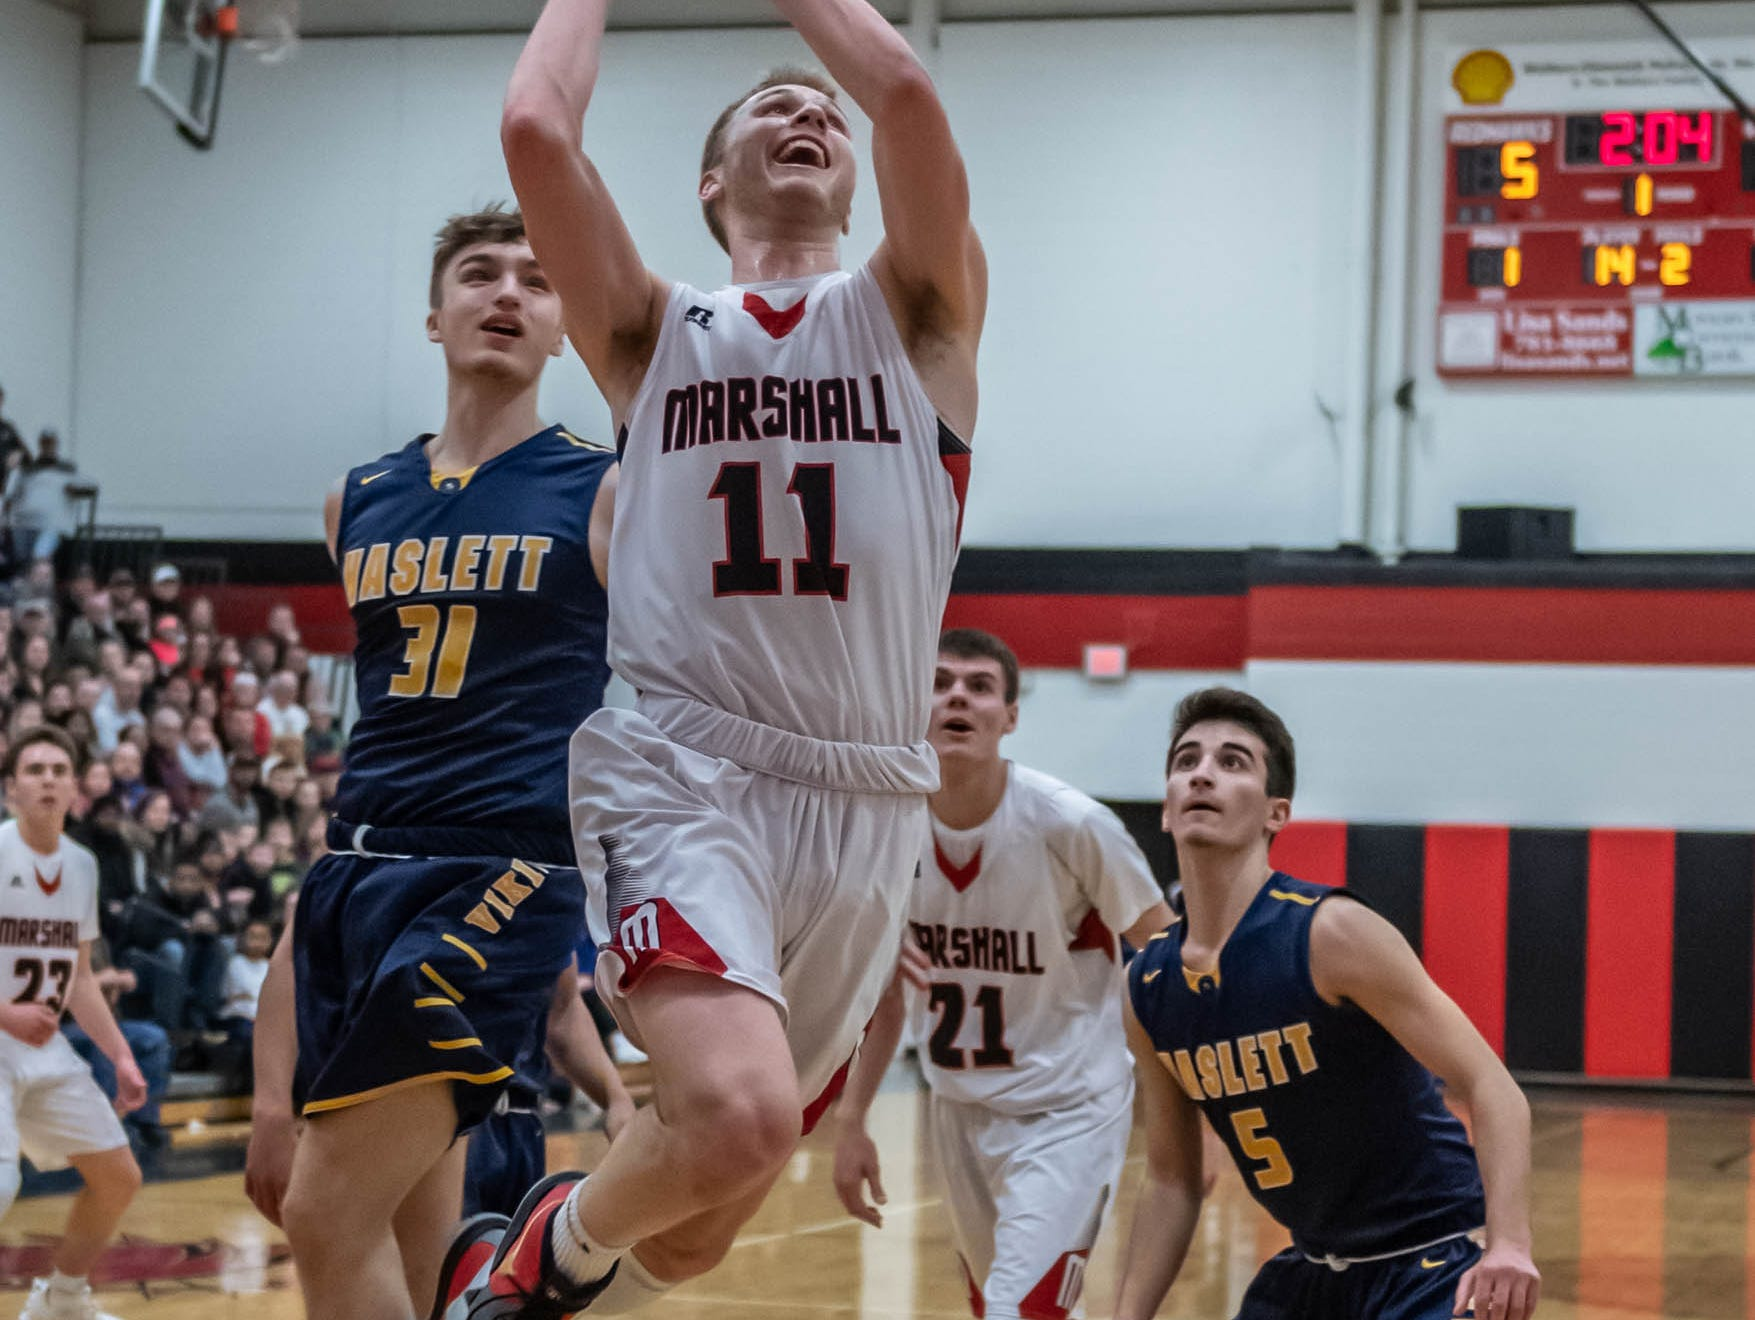 Marshall's Dan Delmotte (21) goes for the hoop during first half action of regional playoffs against Haslett Tuesday evening.